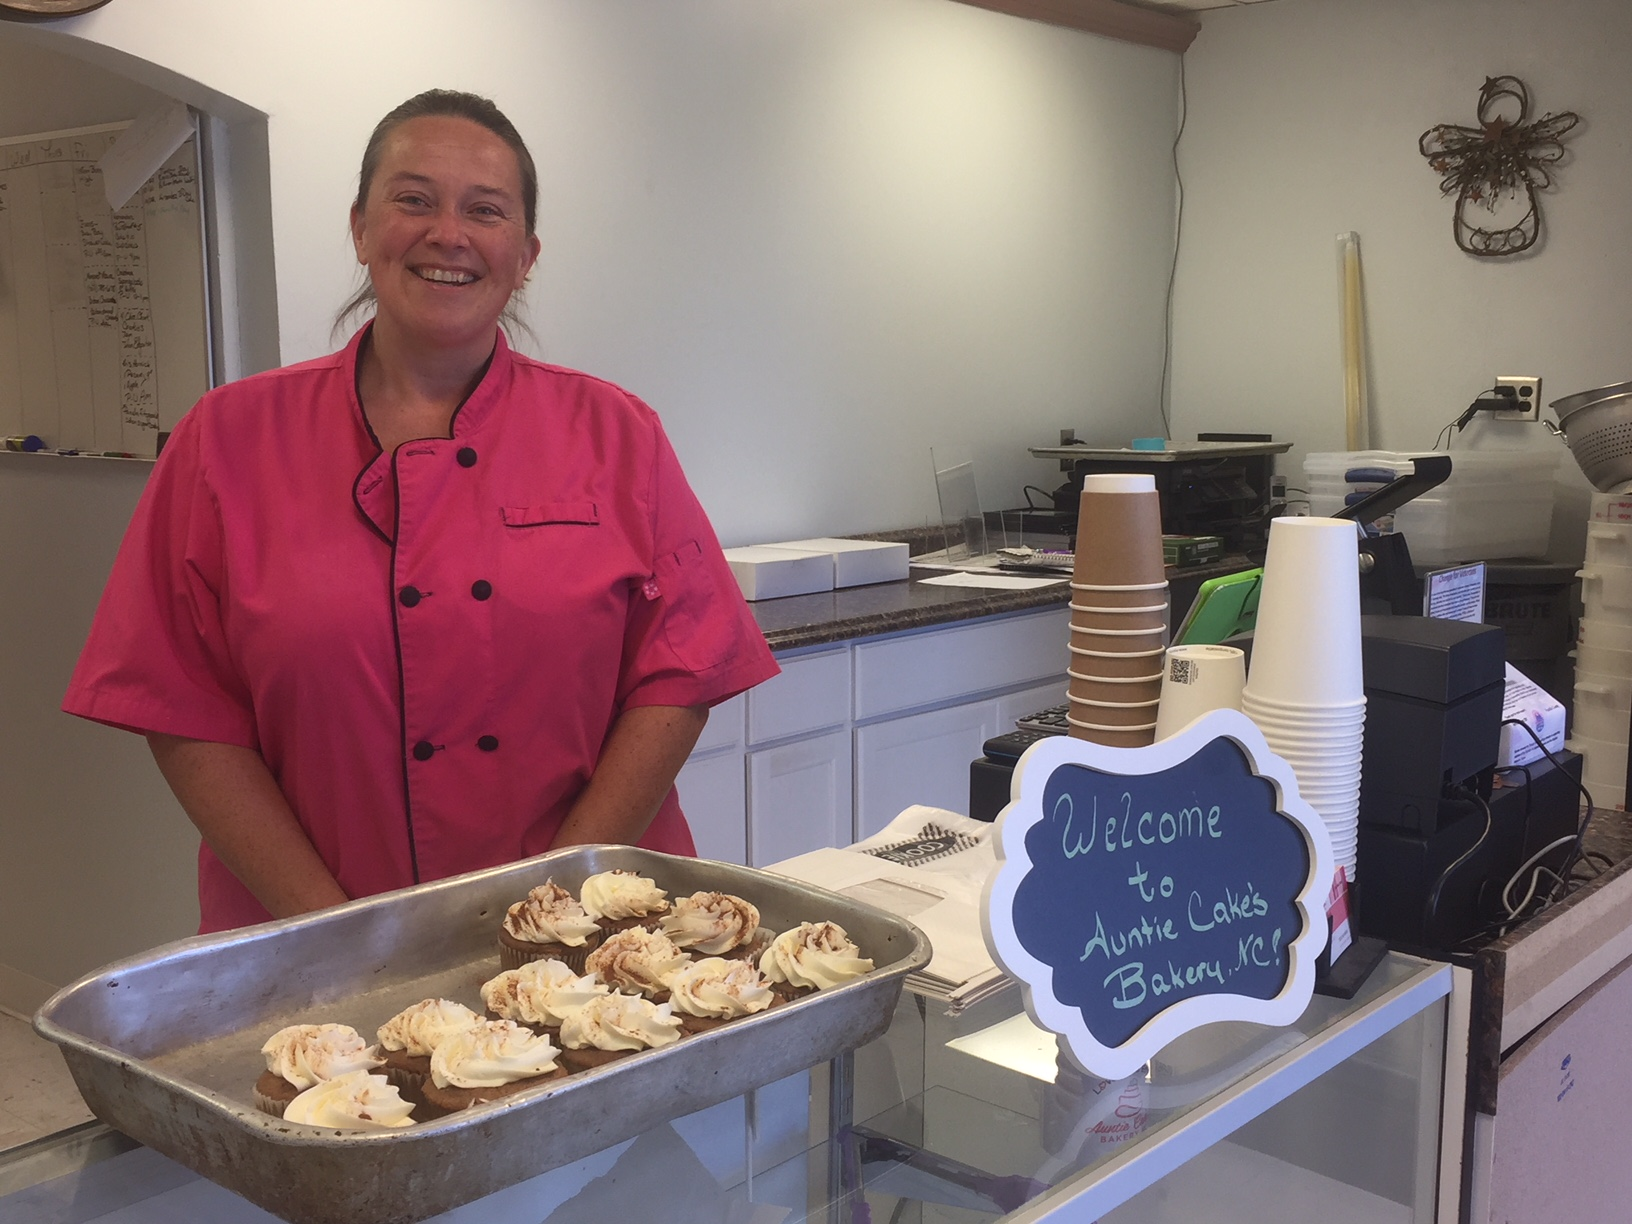 Baker Katharine Colclough with her apple spice cupcakes in Auntie Cake's Bakery, NC. Photo: Kay Whatley